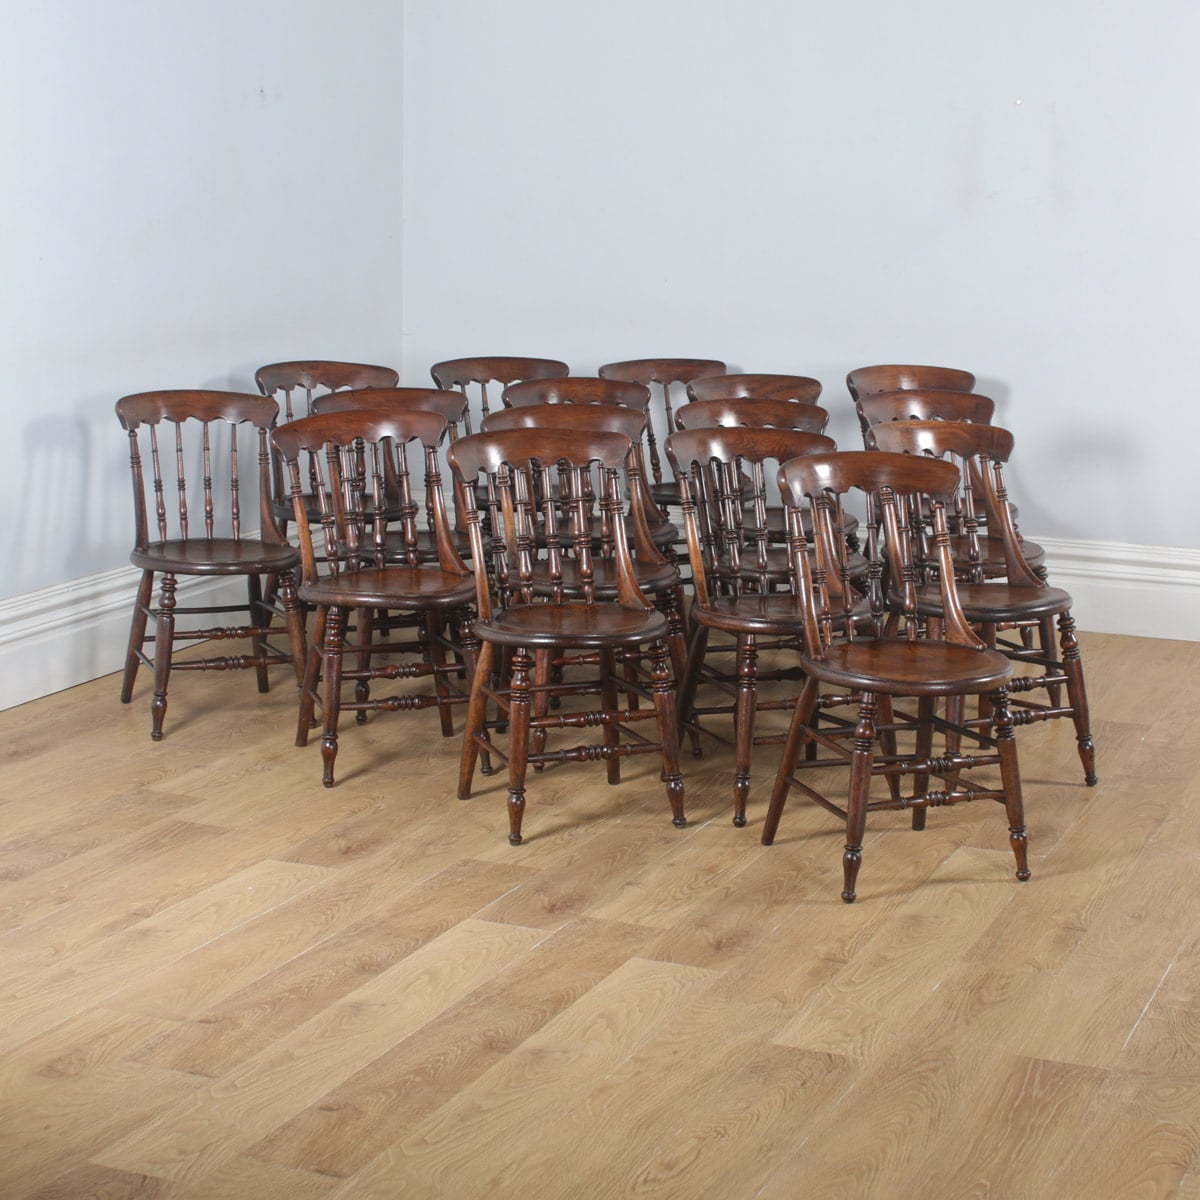 Kitchen Chairs Wood Antique Set Of 16 Victorian Ash Elm Windsor Spindle Bar Back Kitchen Chairs Circa 1880